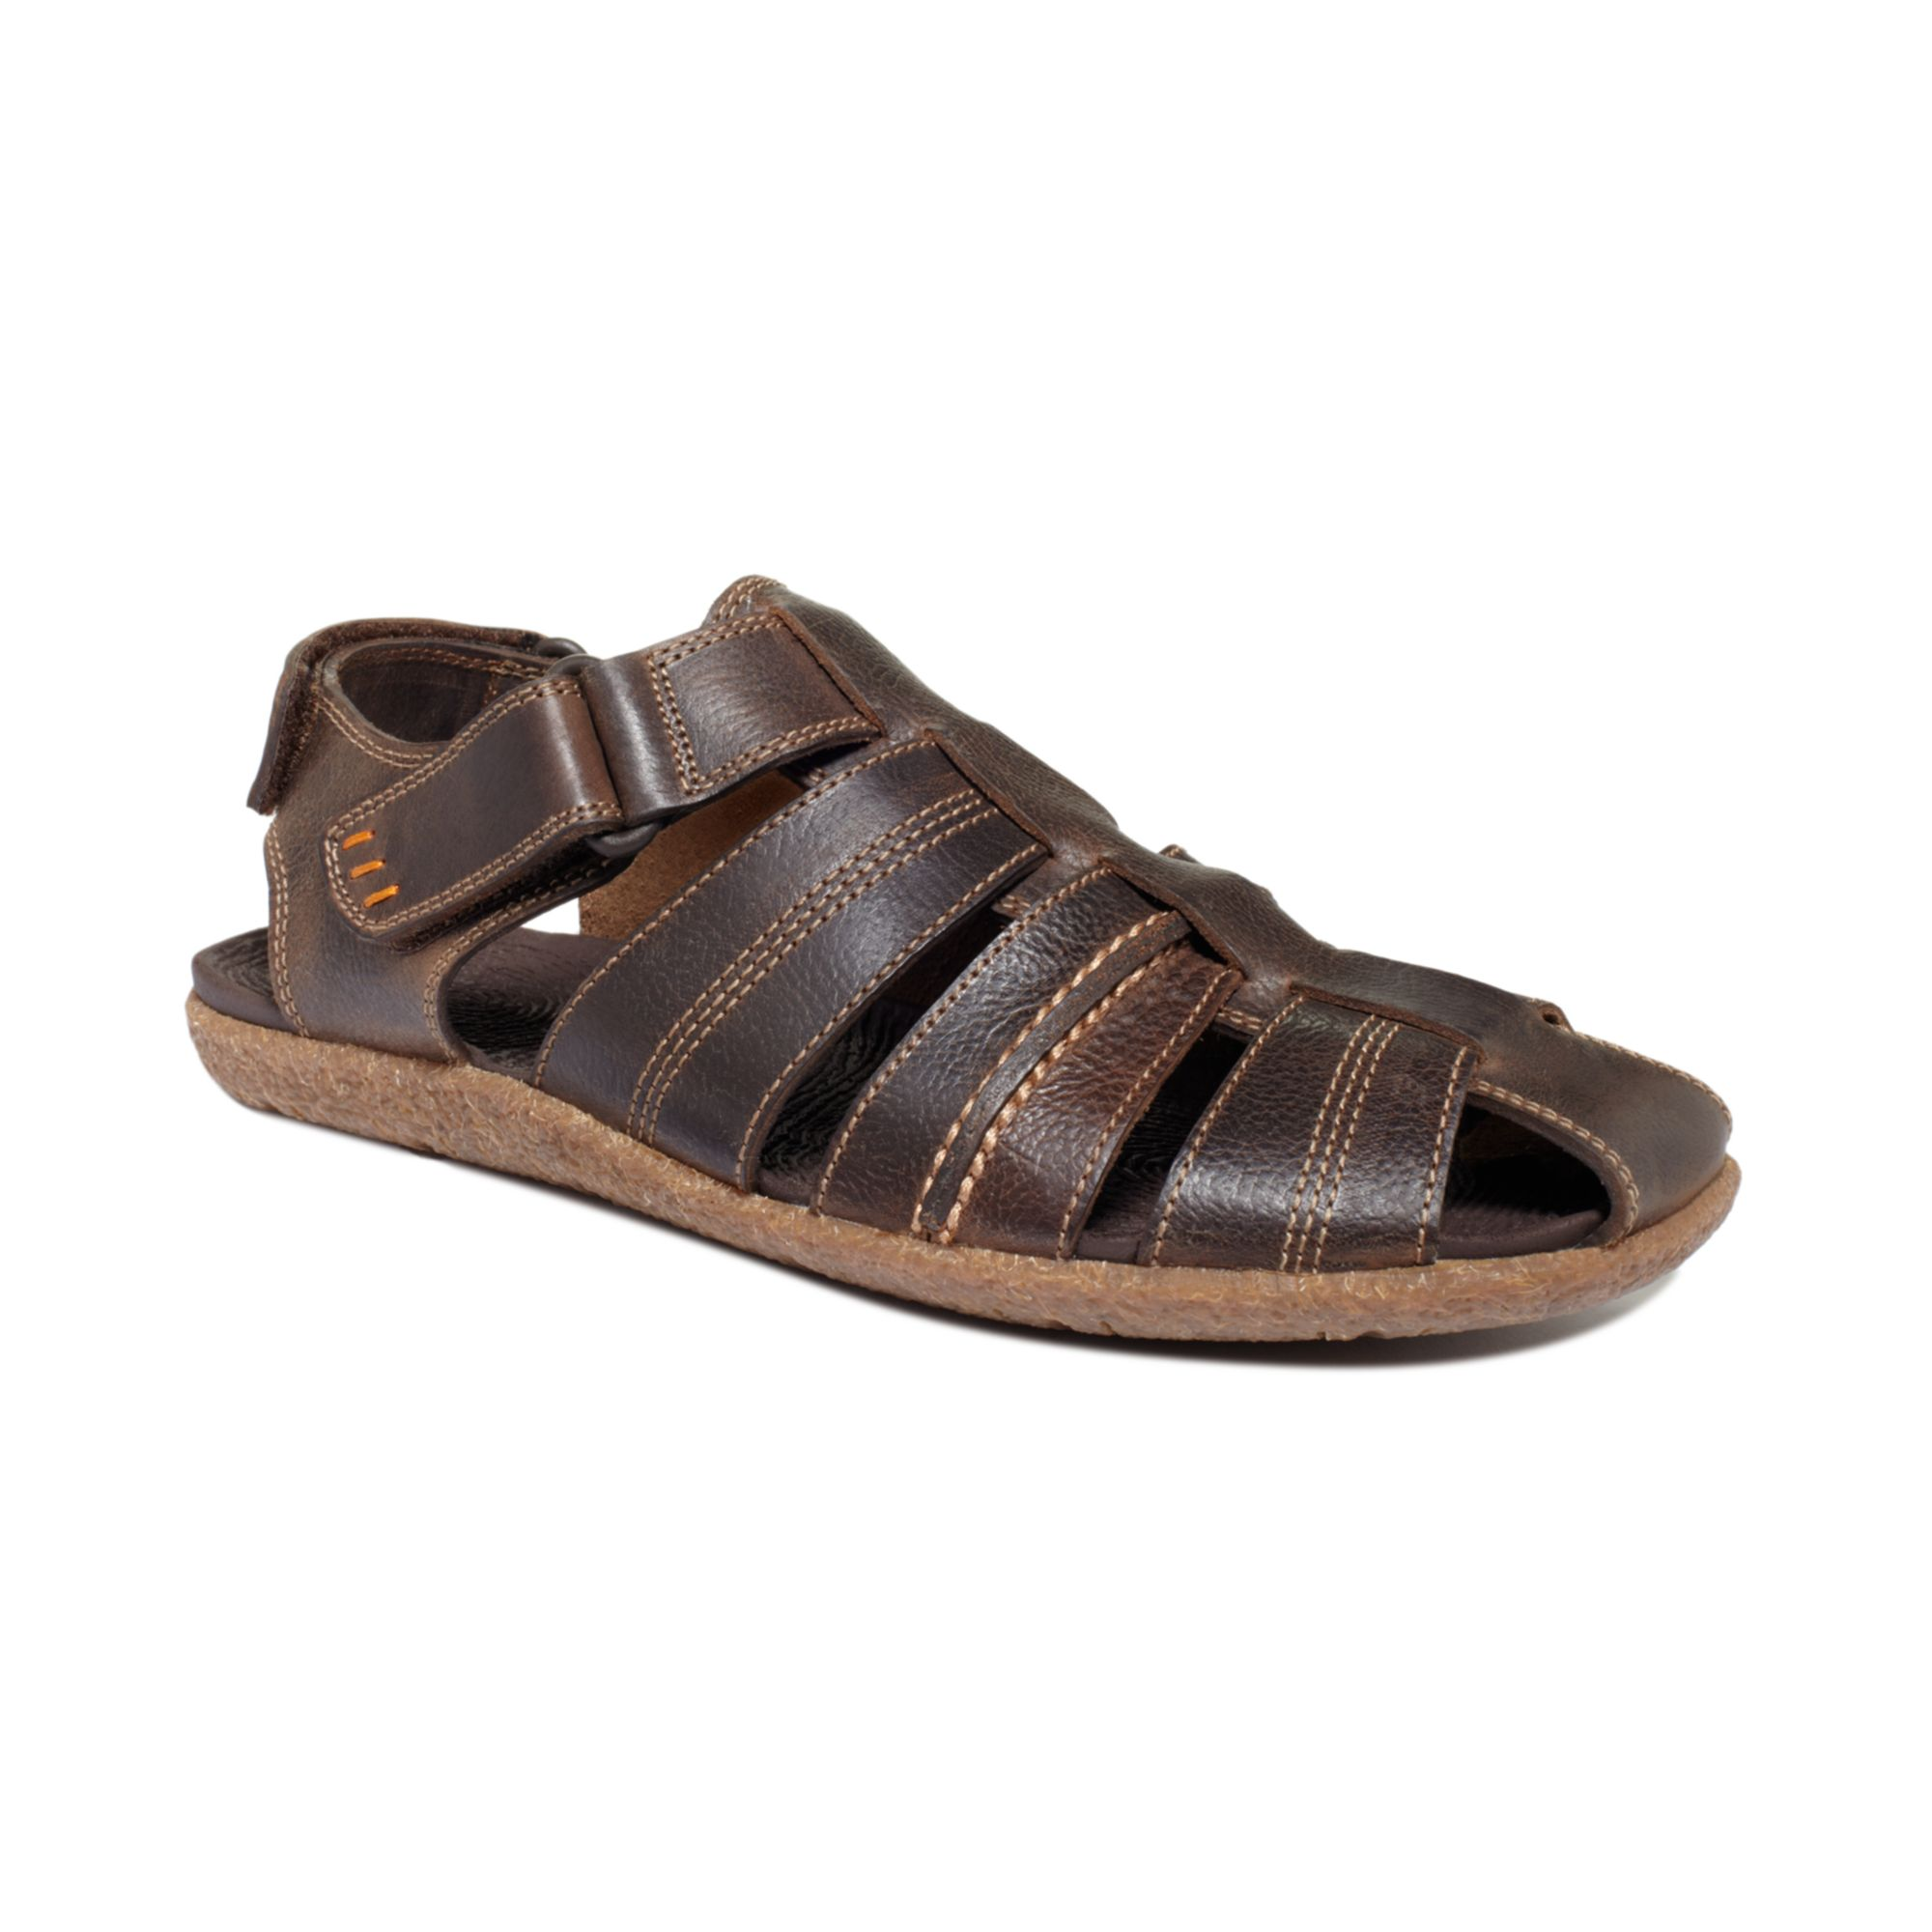 Hush Puppies Frame Closedtoe Fisherman Sandals In Brown